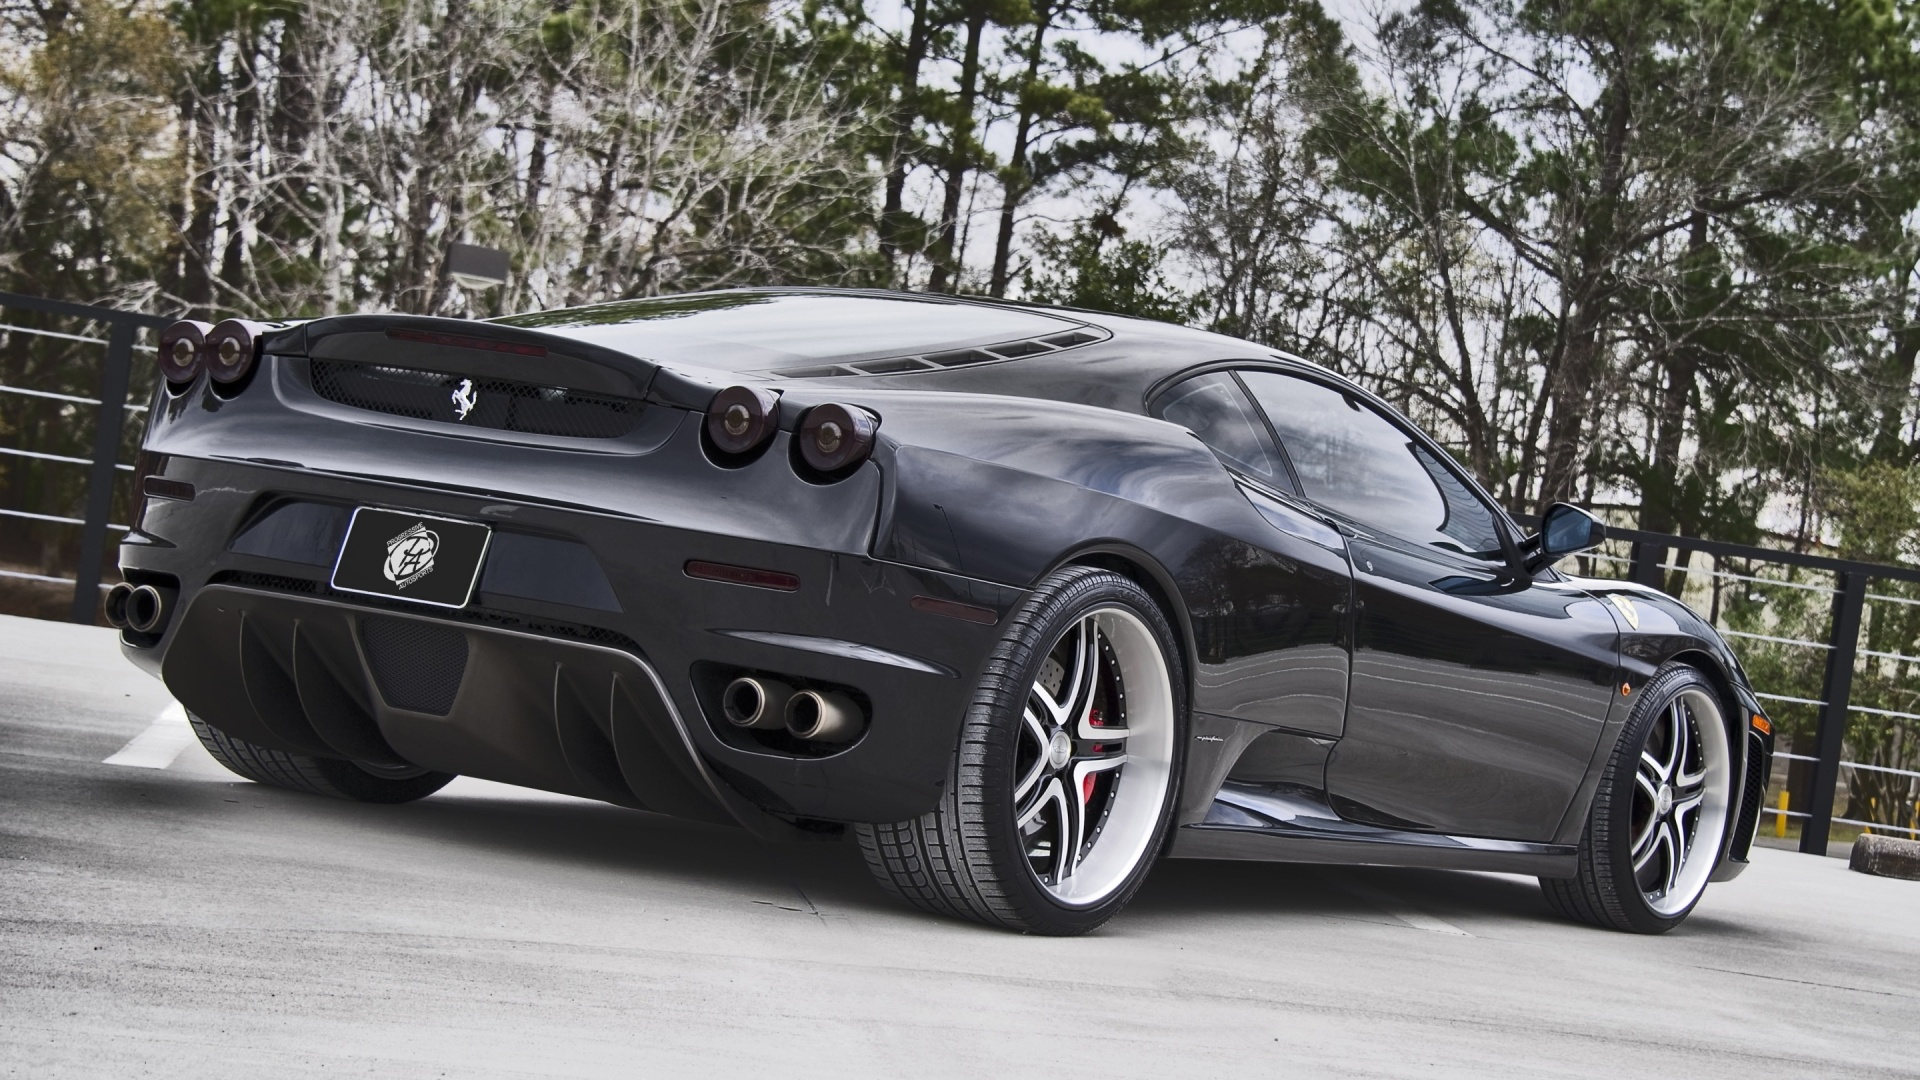 Description The Wallpaper Above Is Ferrari F430 Modified In Resolution 1920x1080 Choose Your